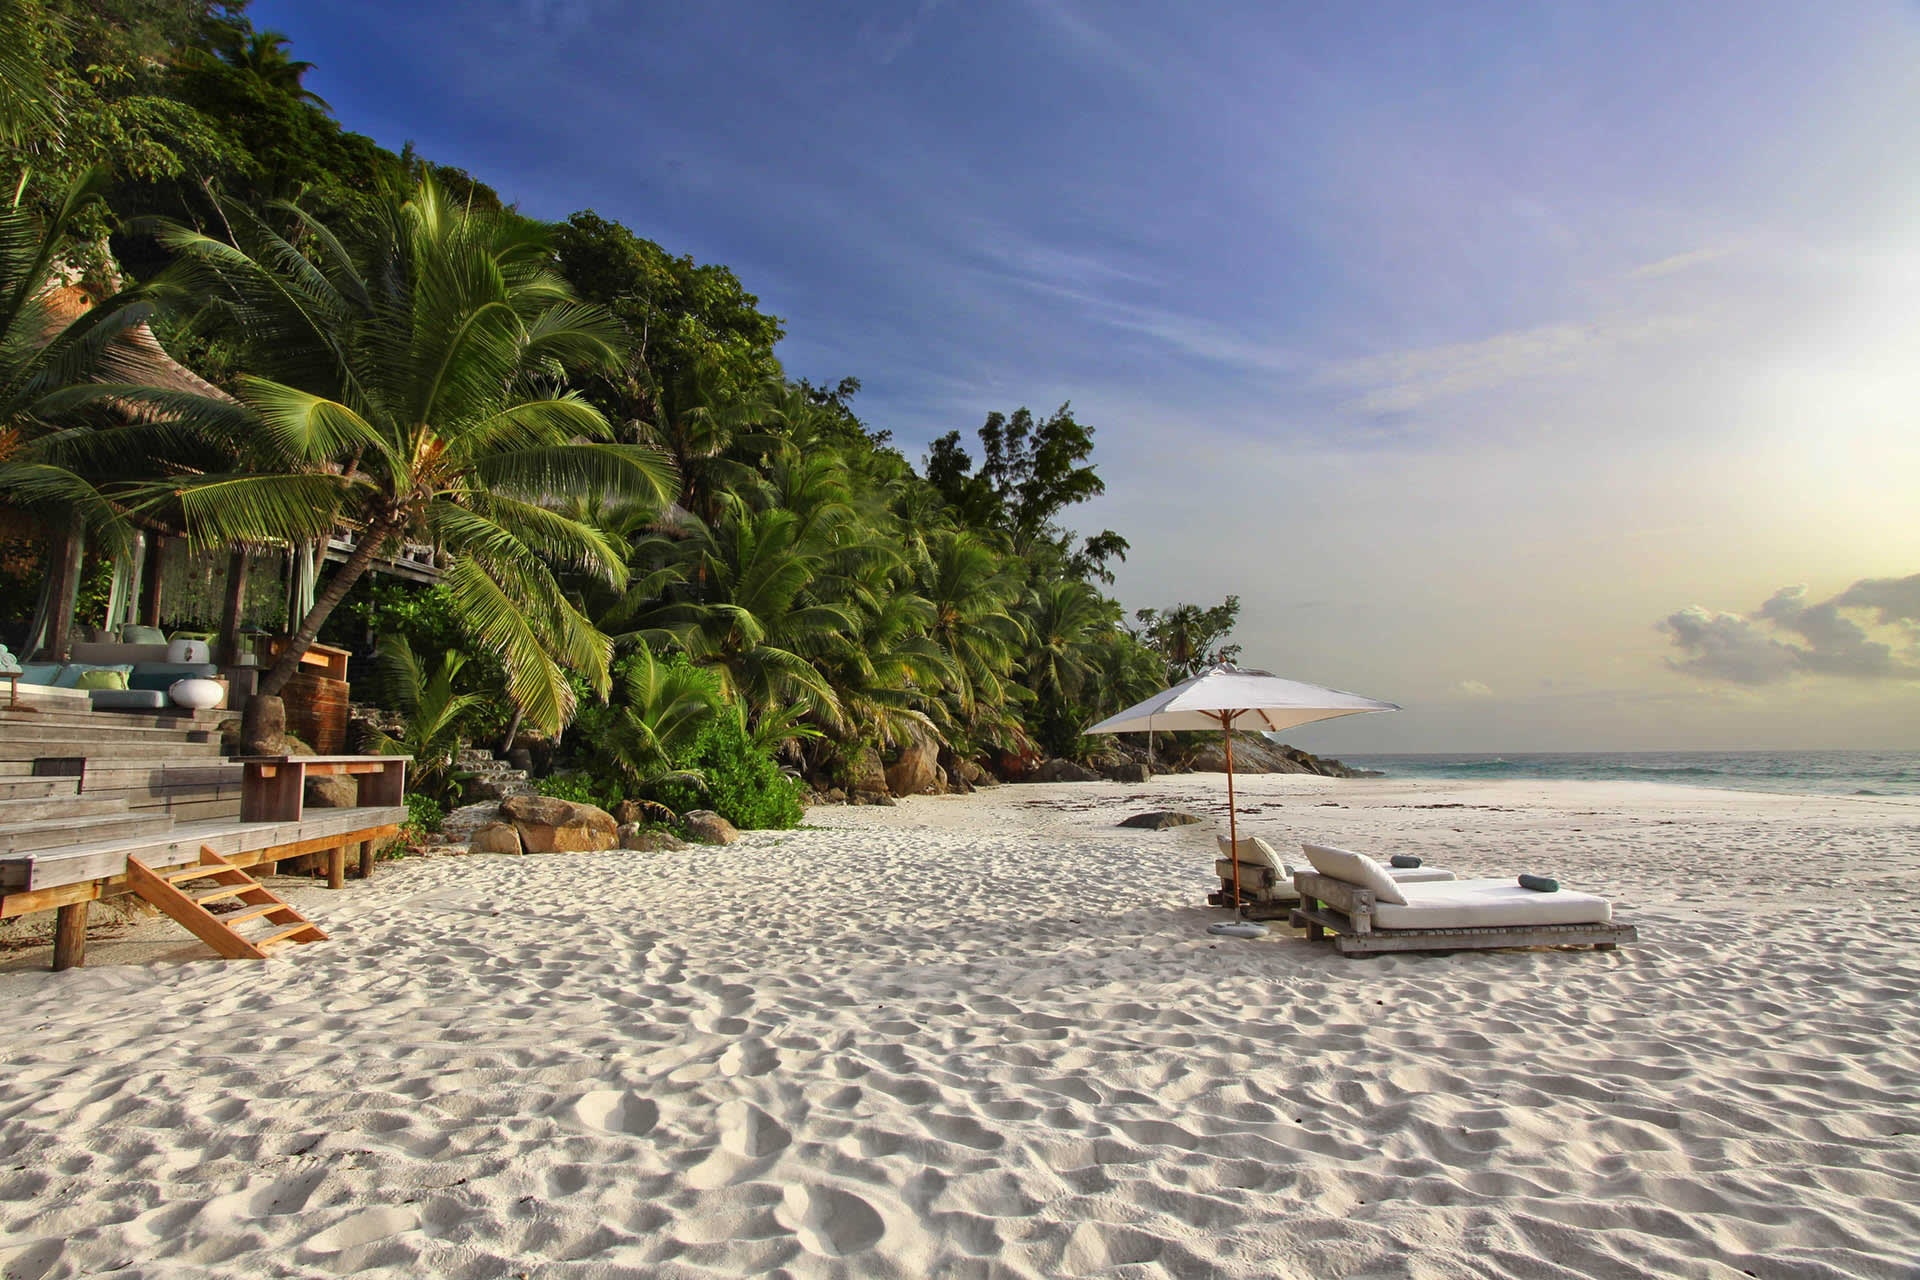 seychelles beaches wildlife scuba diving and island hopping. Black Bedroom Furniture Sets. Home Design Ideas